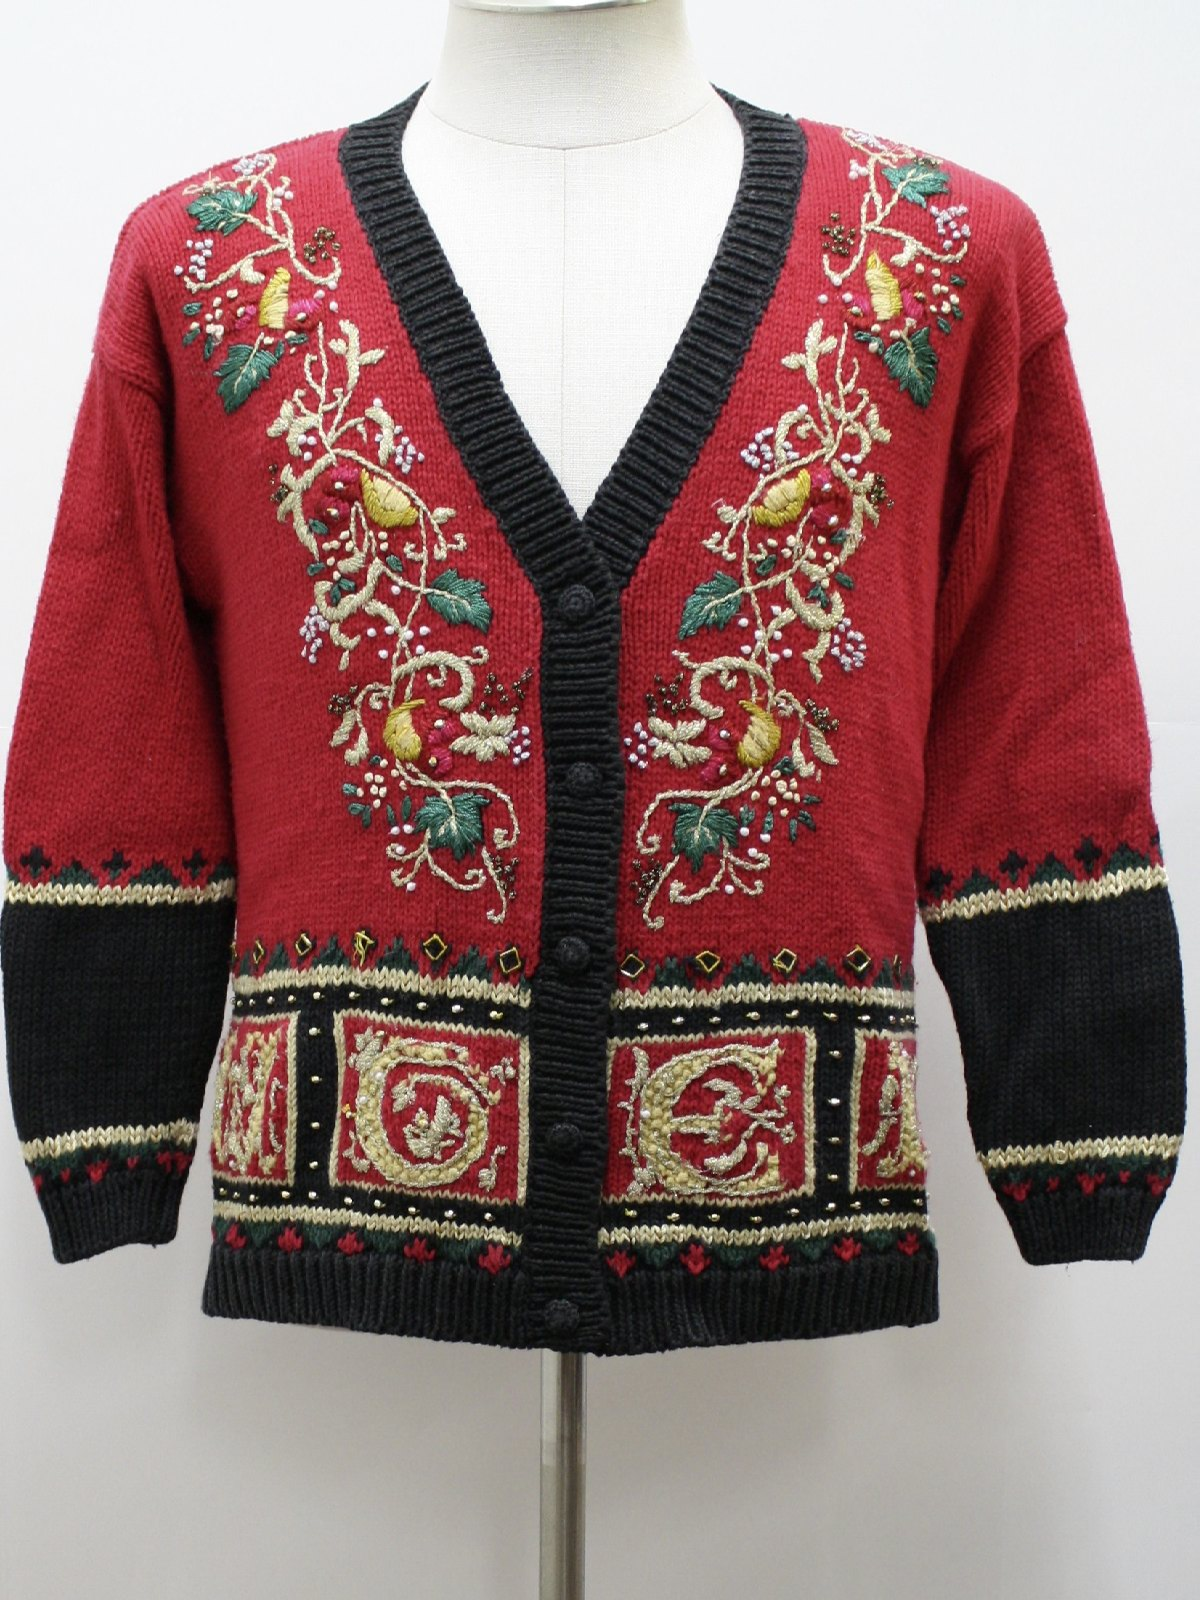 Womens Ugly Christmas Sweater: -Tiara- Womens Red